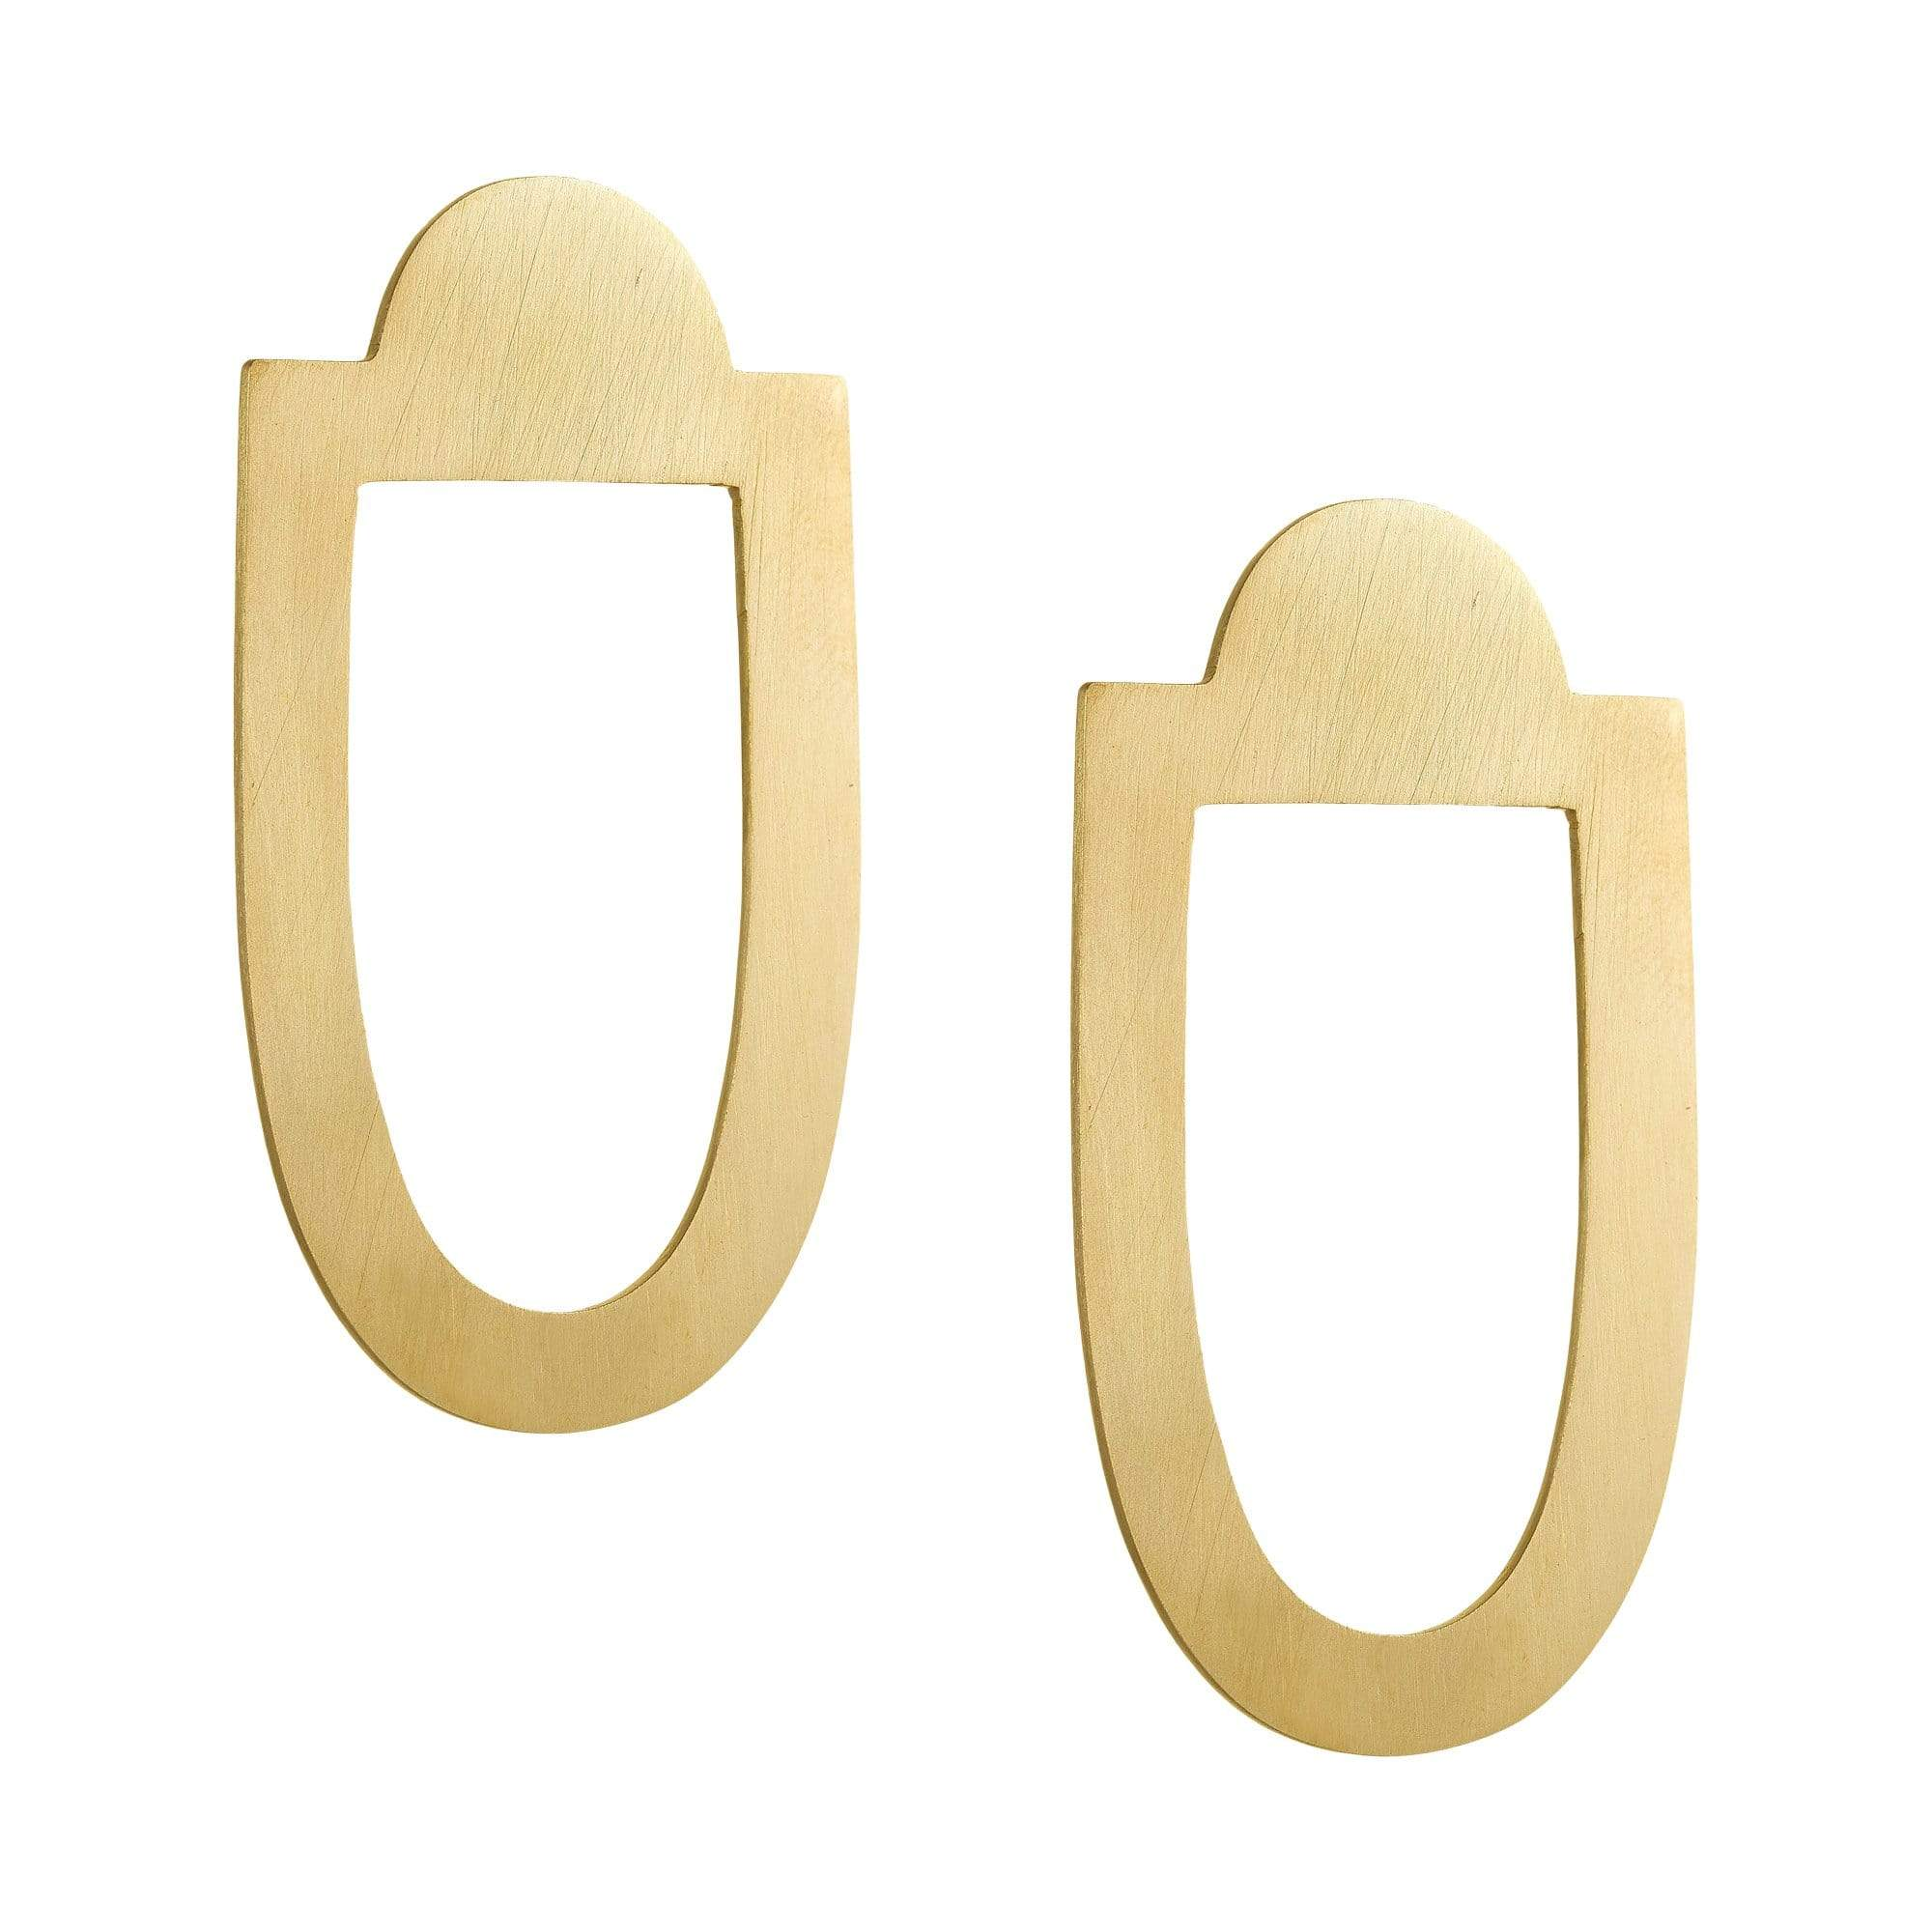 Art Deco Geometric Brass Earrings